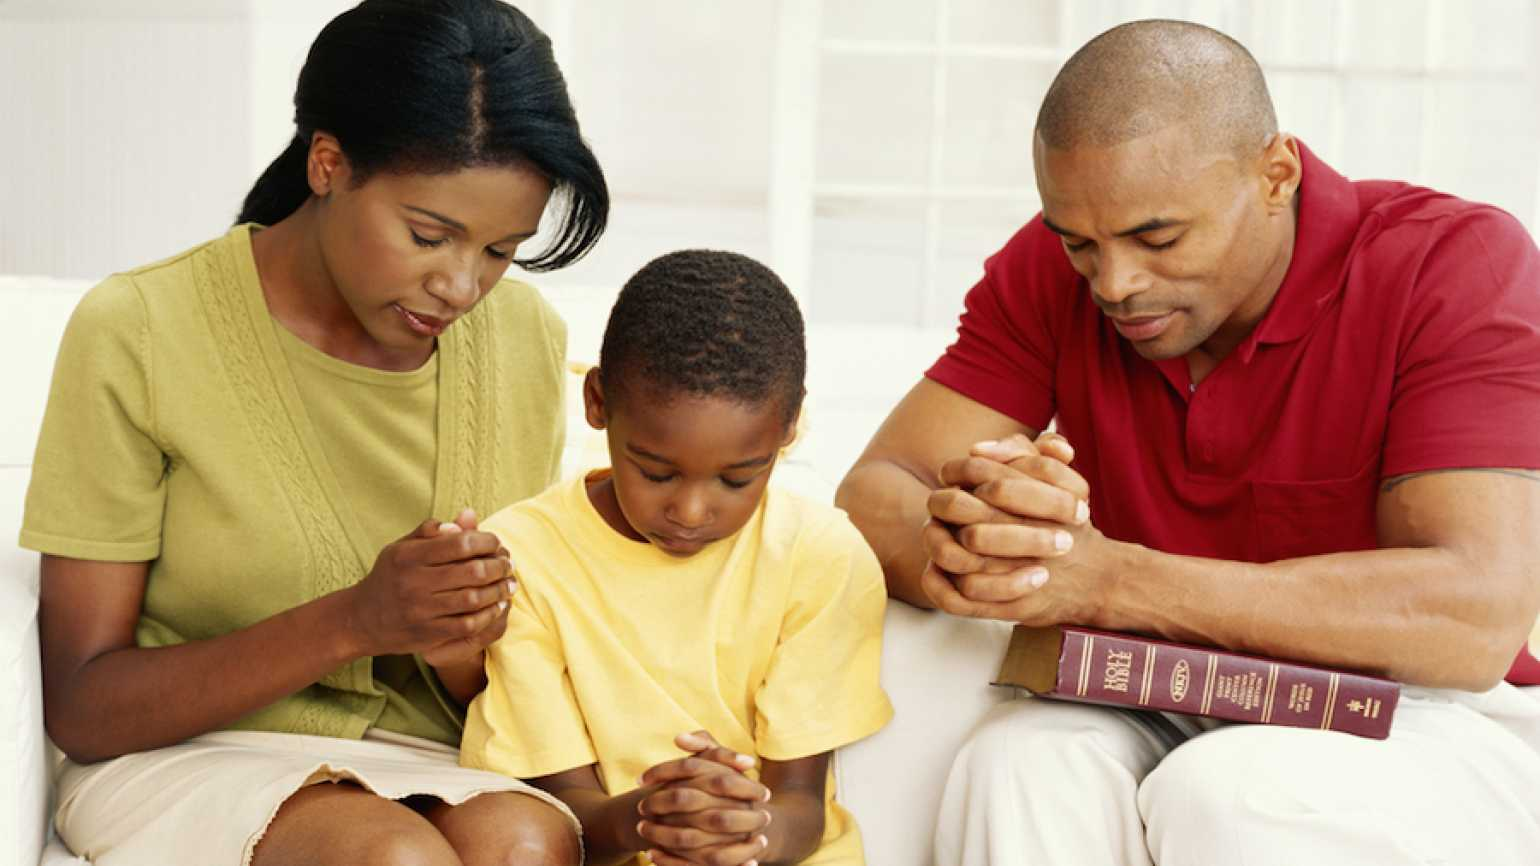 A family praying in their home.